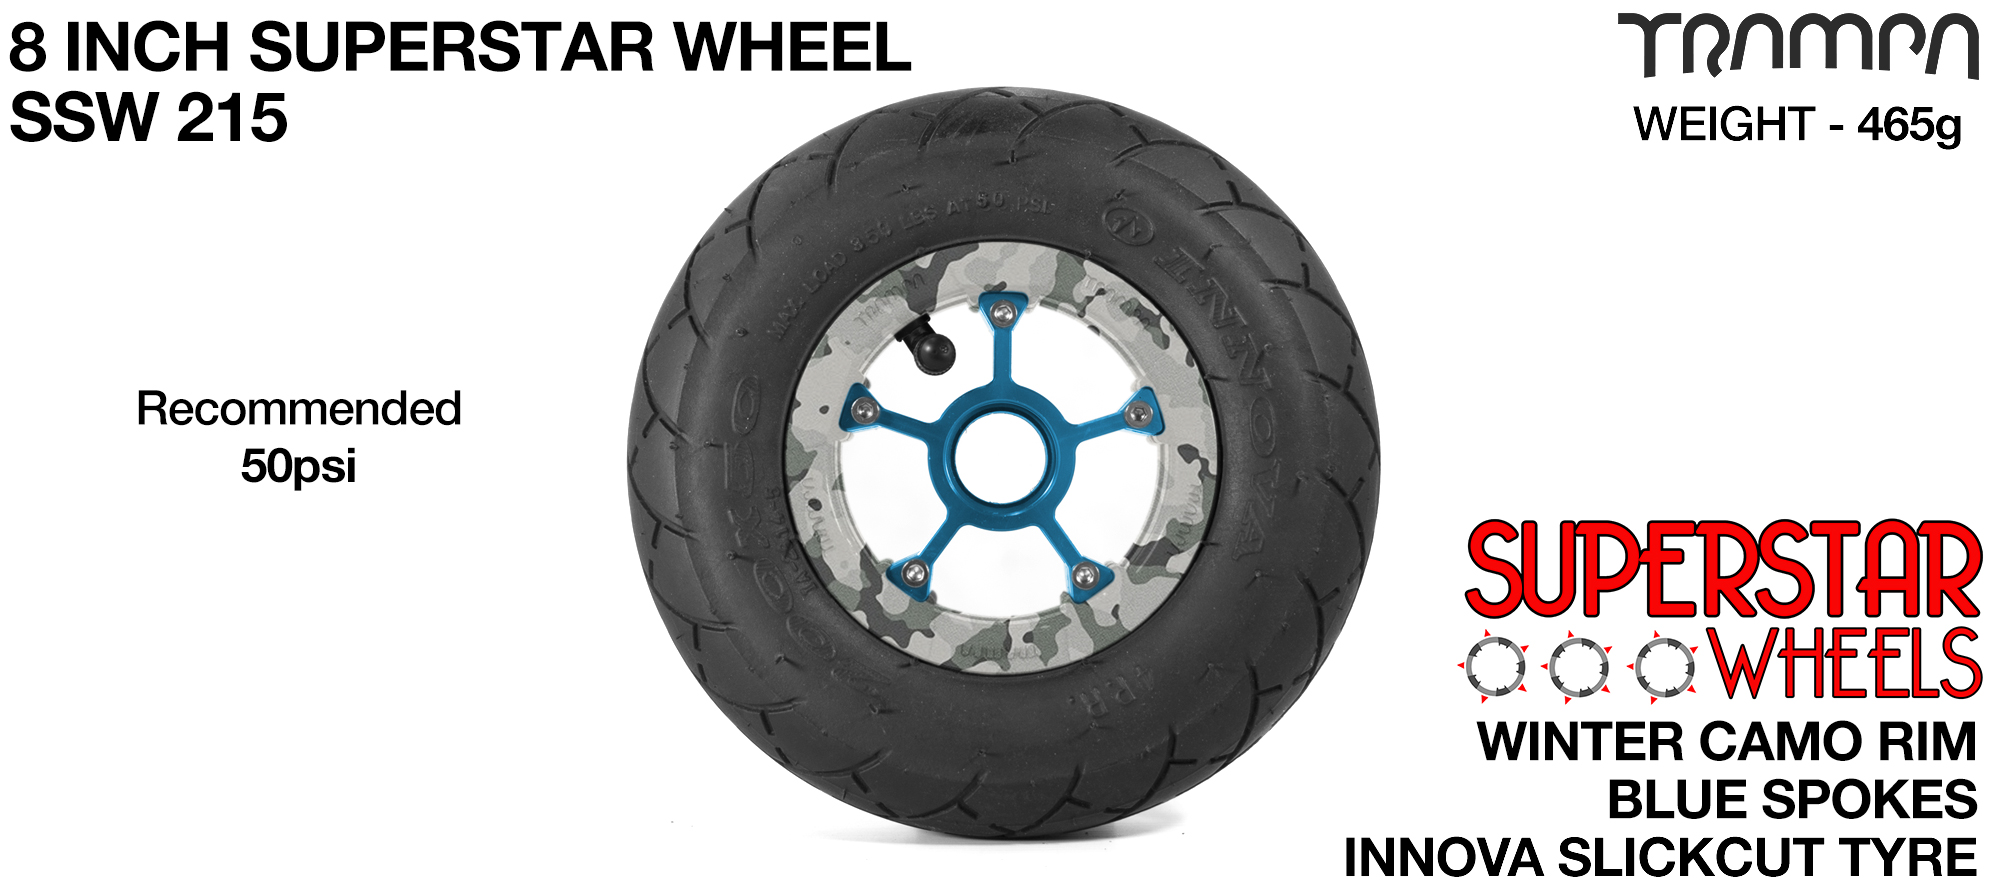 Superstar 8 inch wheel - Winter Camo Superstar Rim with Blue Anodised spokes & Black INLINE 8 inch Tyre